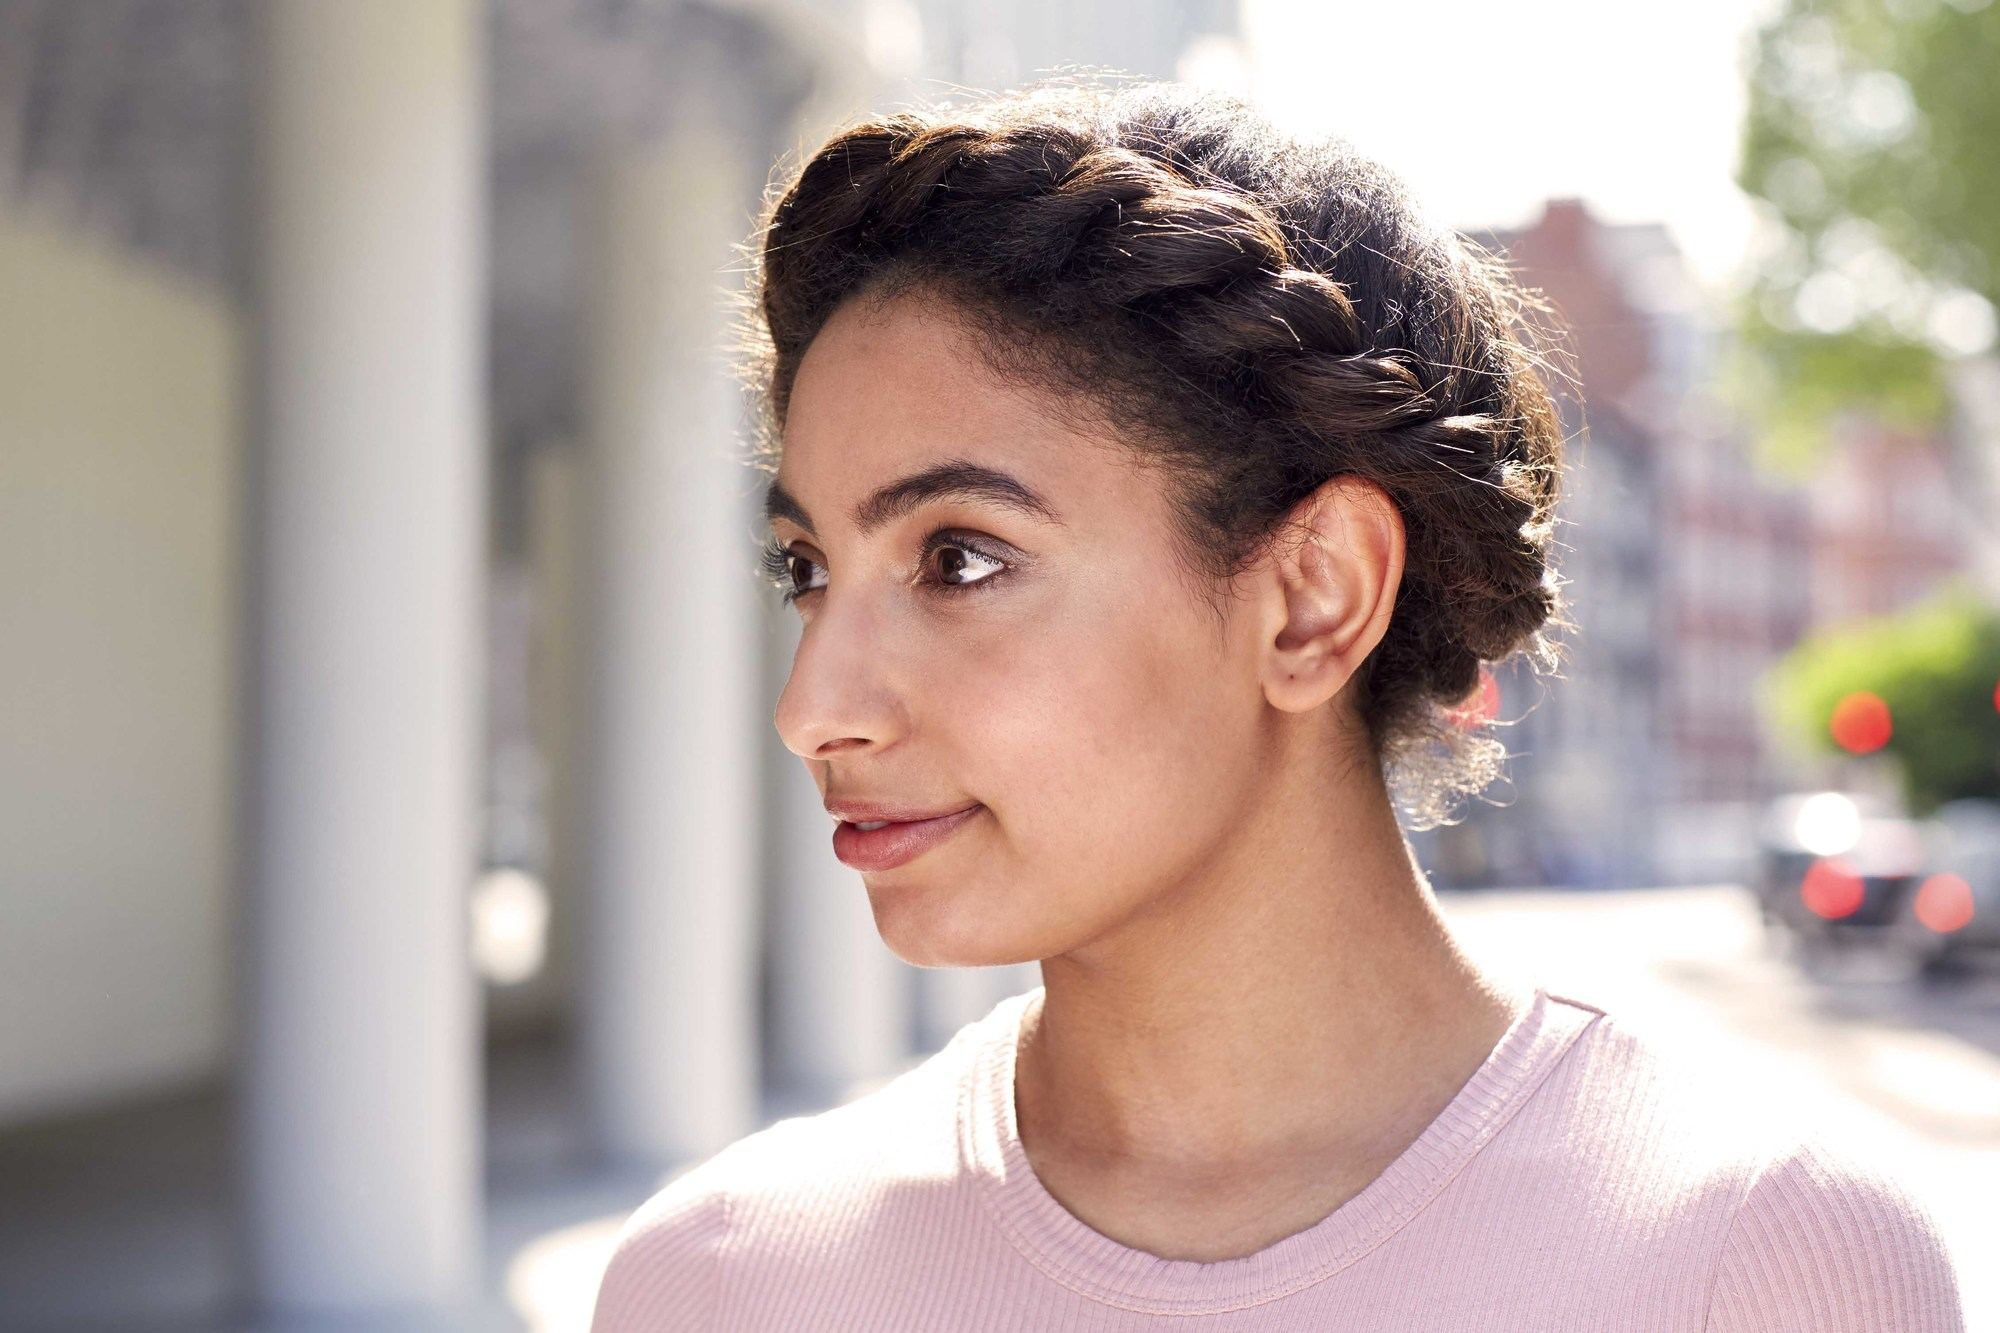 Twist Hairstyles: Stylish and Protective Looks to Try Now